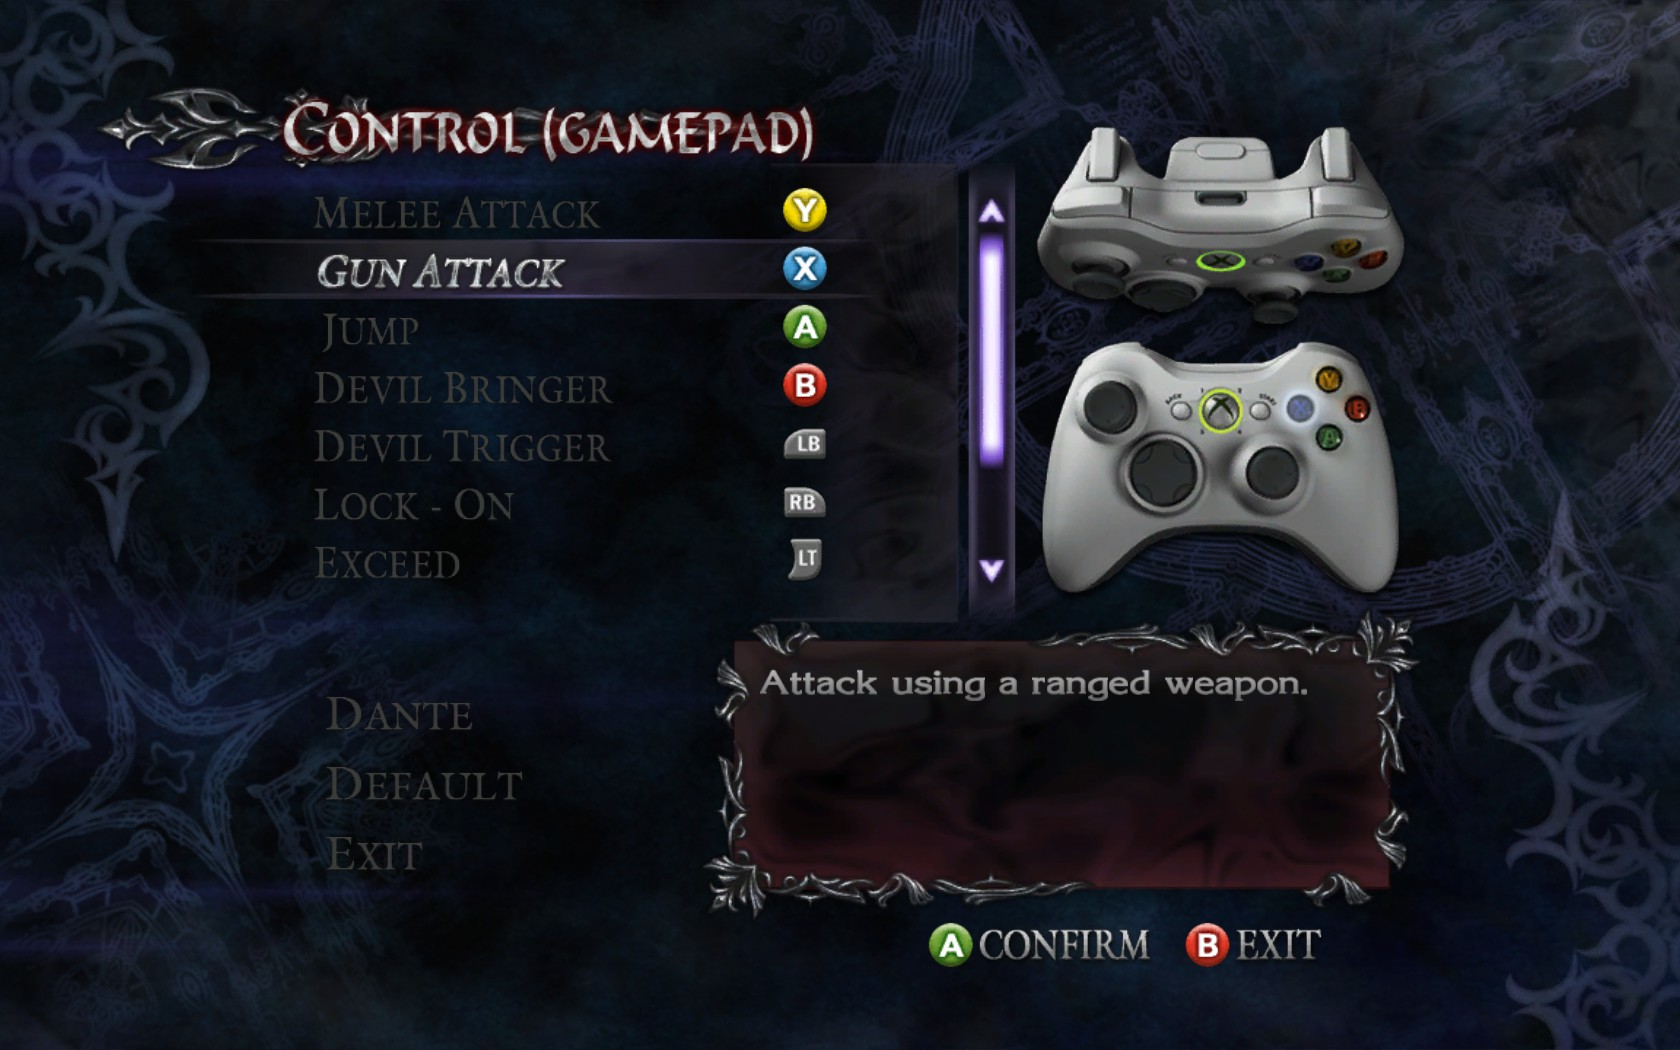 Does DMC4 work with controllers?